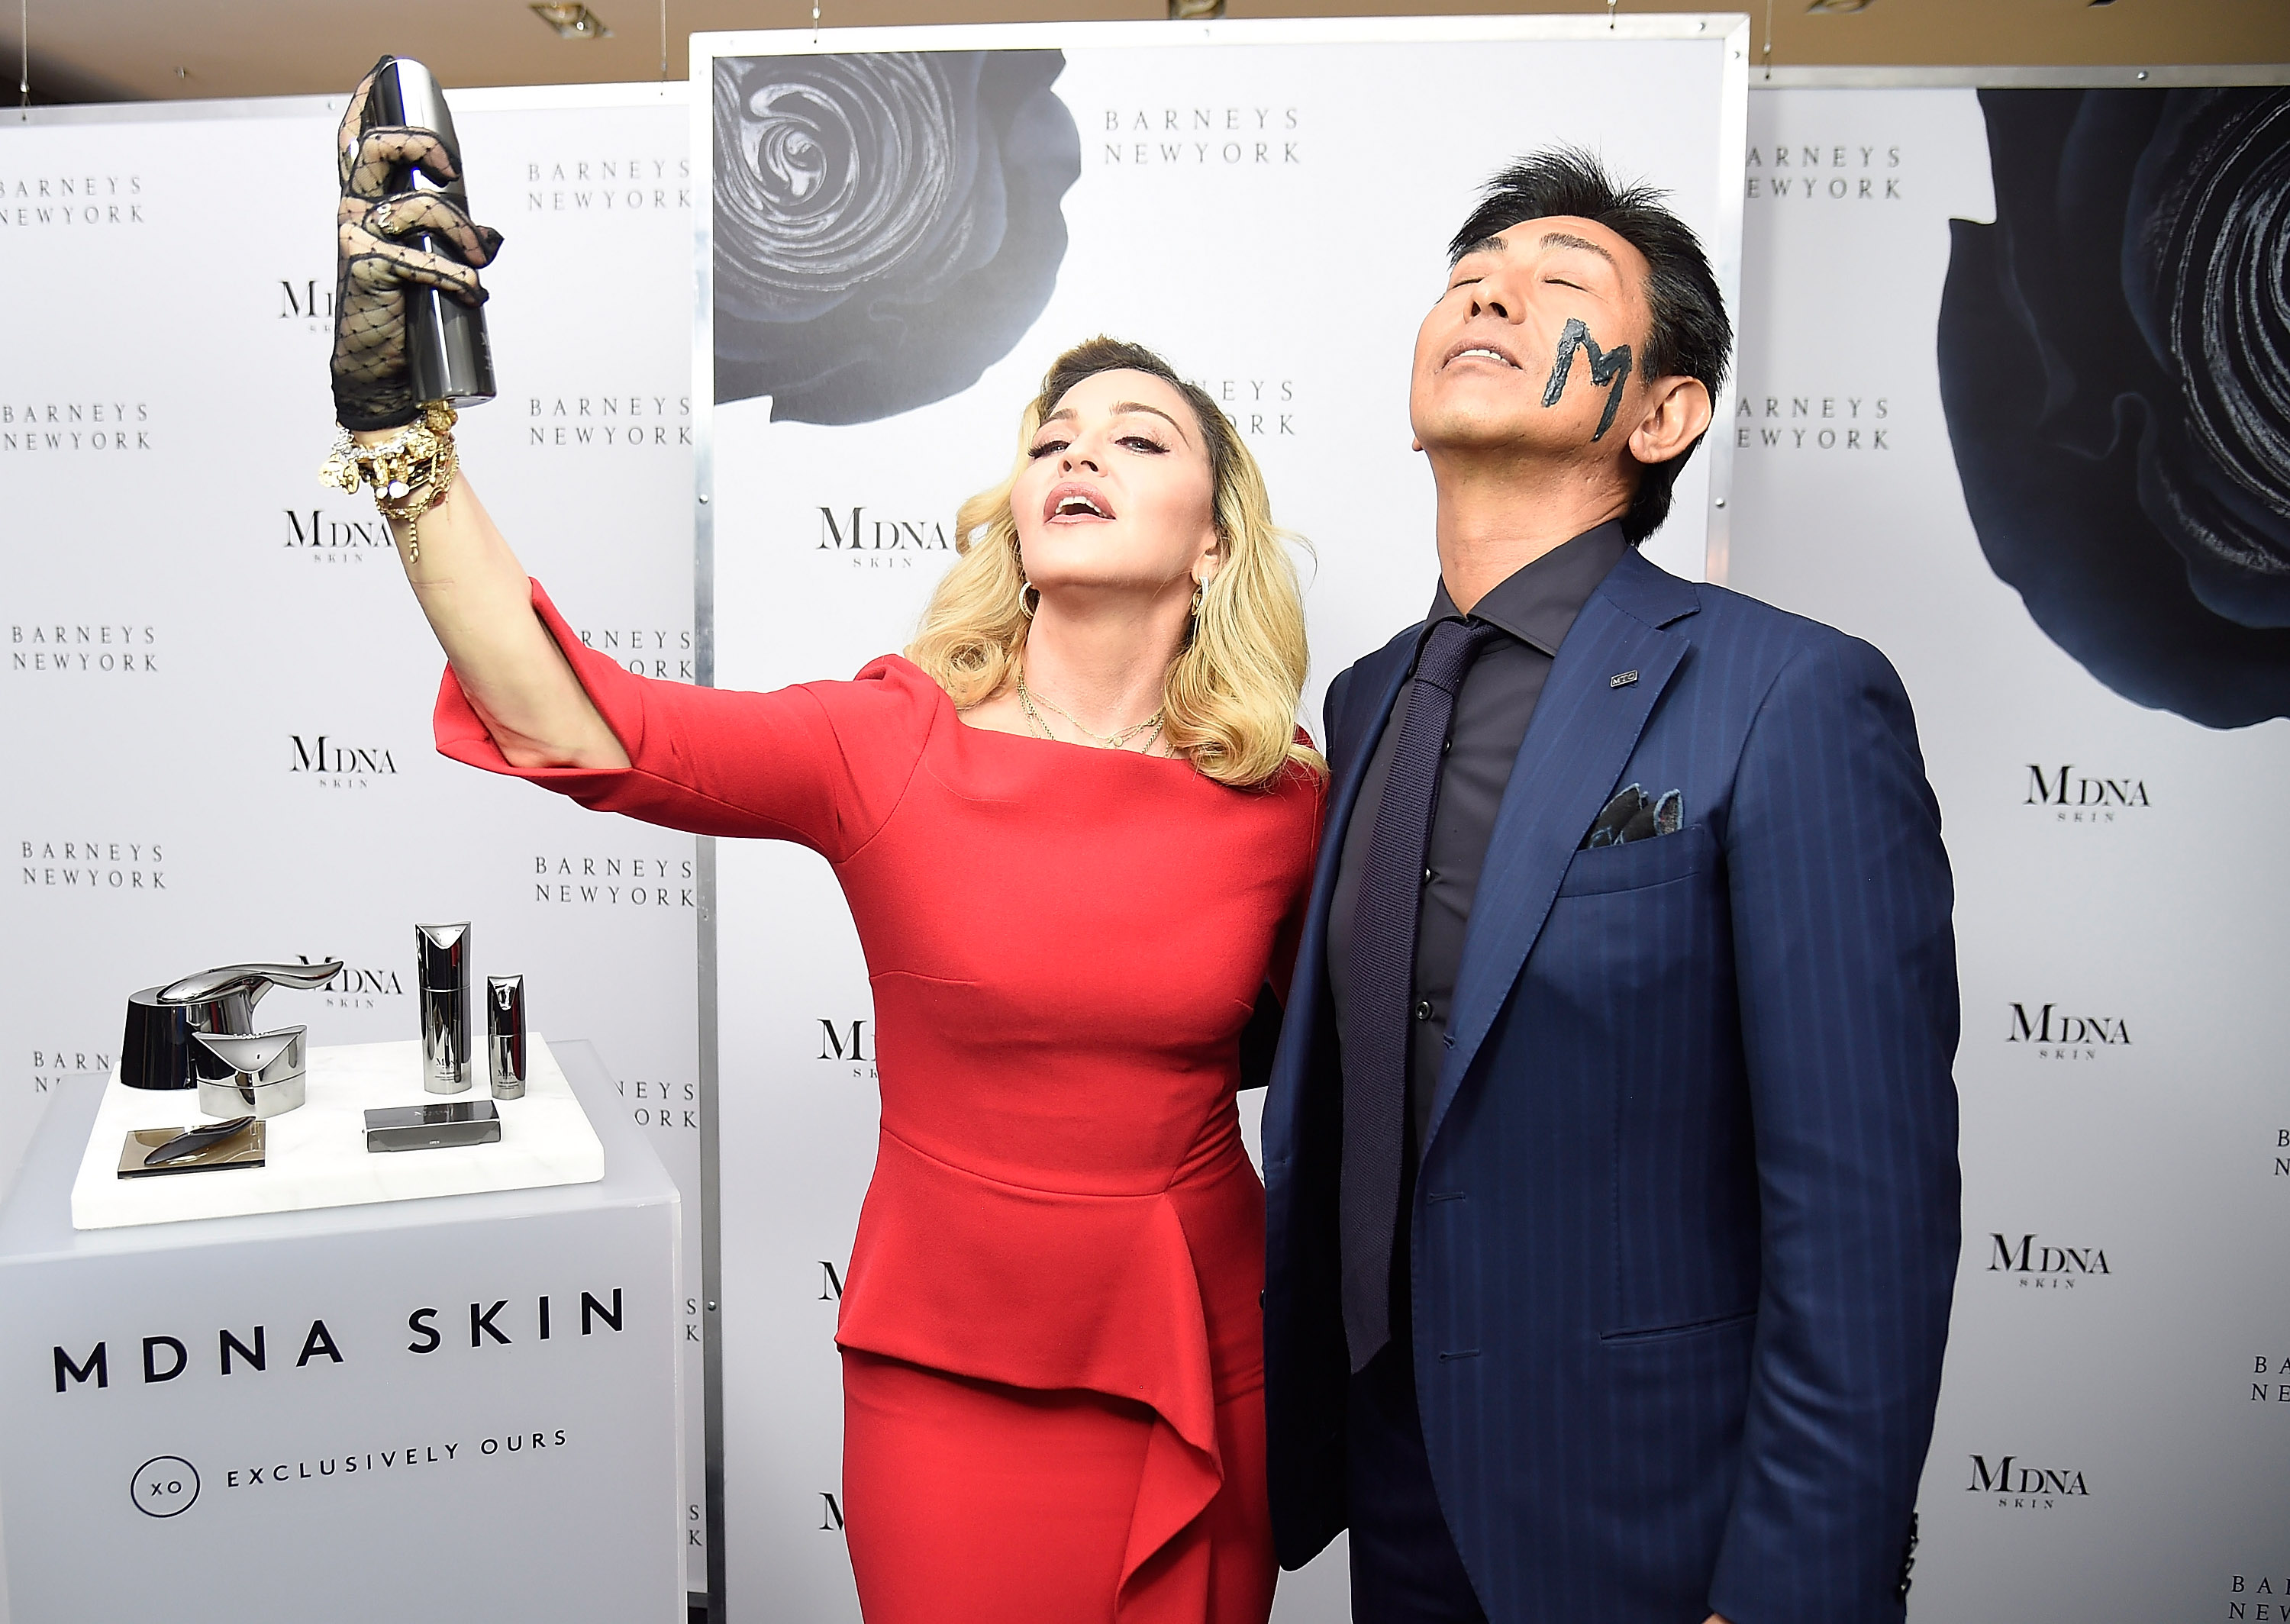 NEW YORK, NY - SEPTEMBER 26:  (Exclusive Coverage) Madonna and Tsuyoshi Matsushita, President of MTG Co., Ltd  launch MDNA SKIN collection at Barneys New York on September 26, 2017 in New York City.  (Photo by Kevin Mazur/Getty Images for MDNA SKIN)